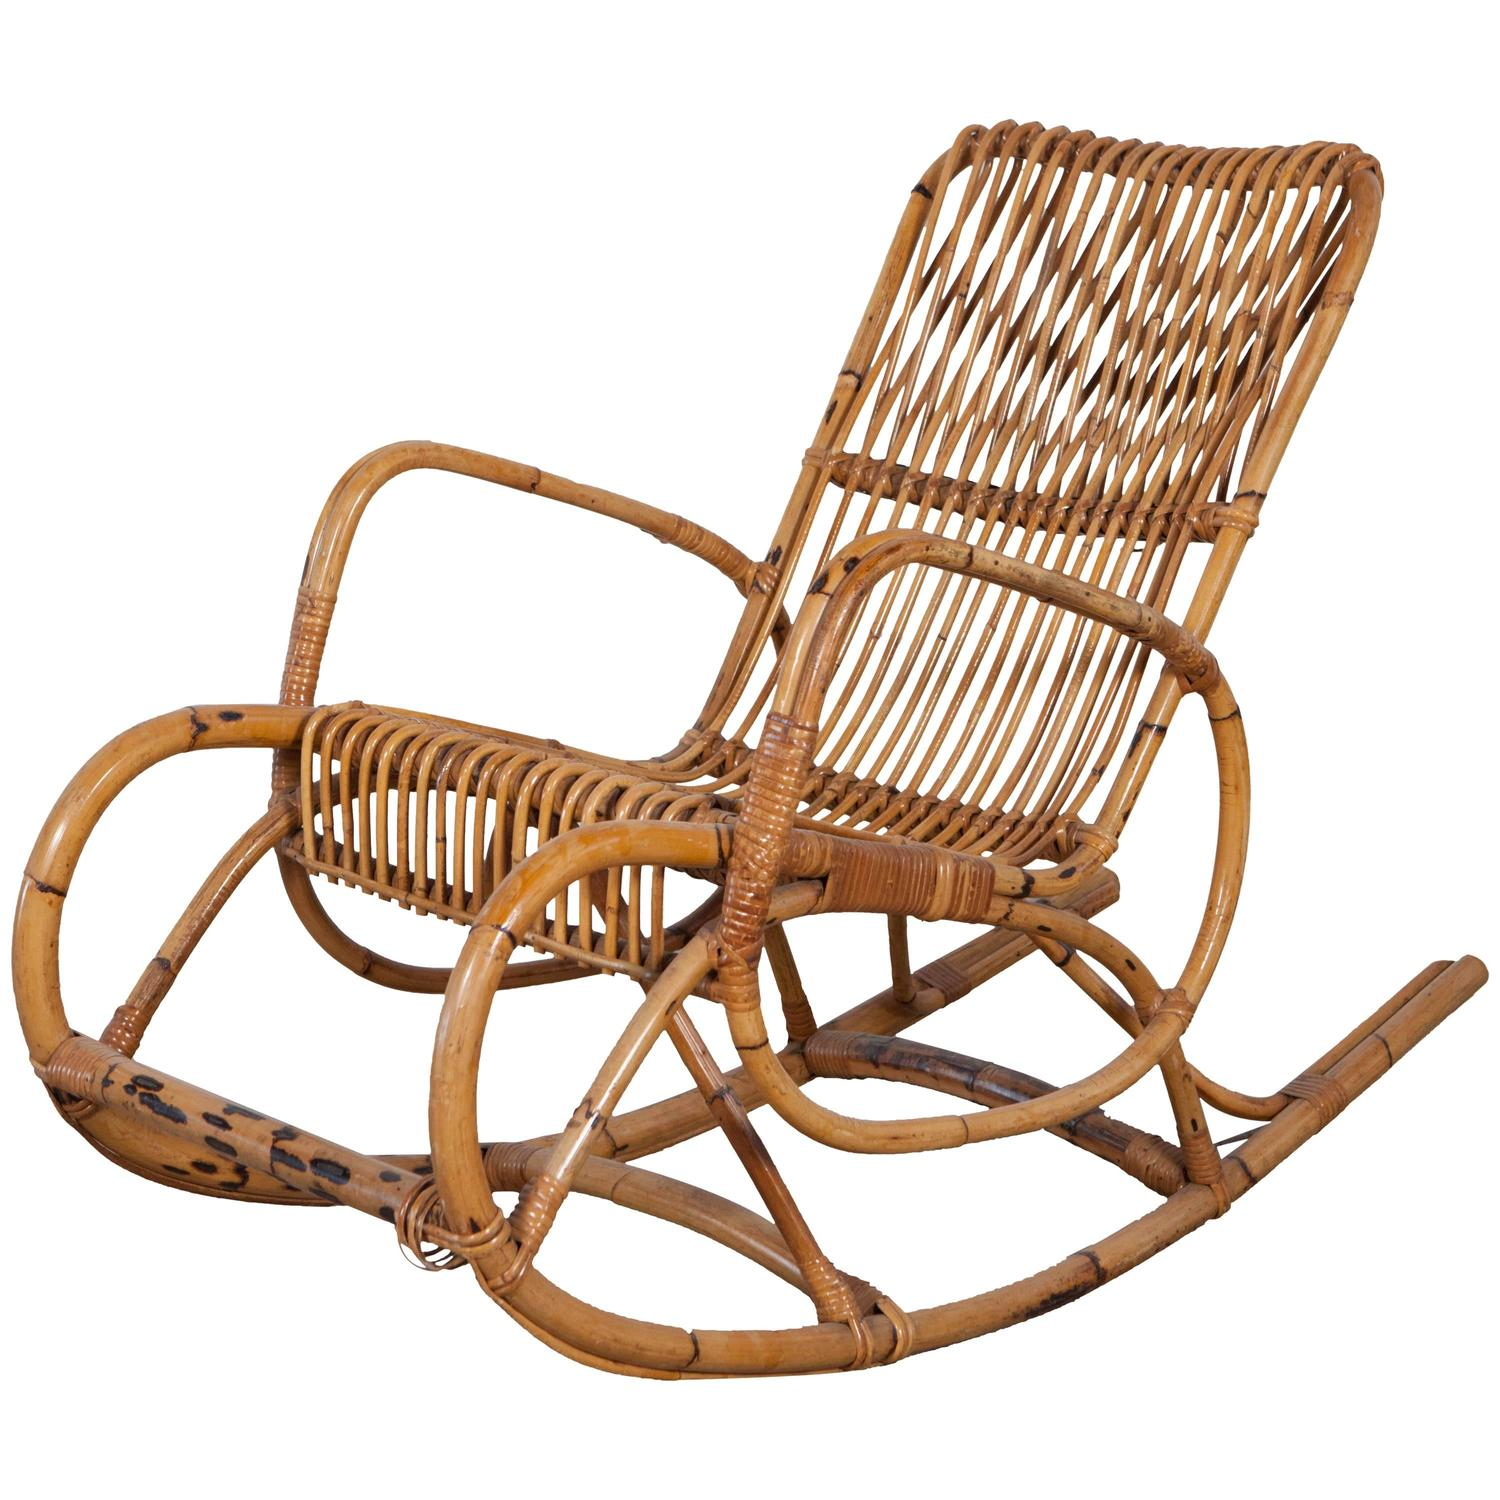 Vintage Italian Bamboo Rocking Chair With Square Arms For Sale At 1stdibs